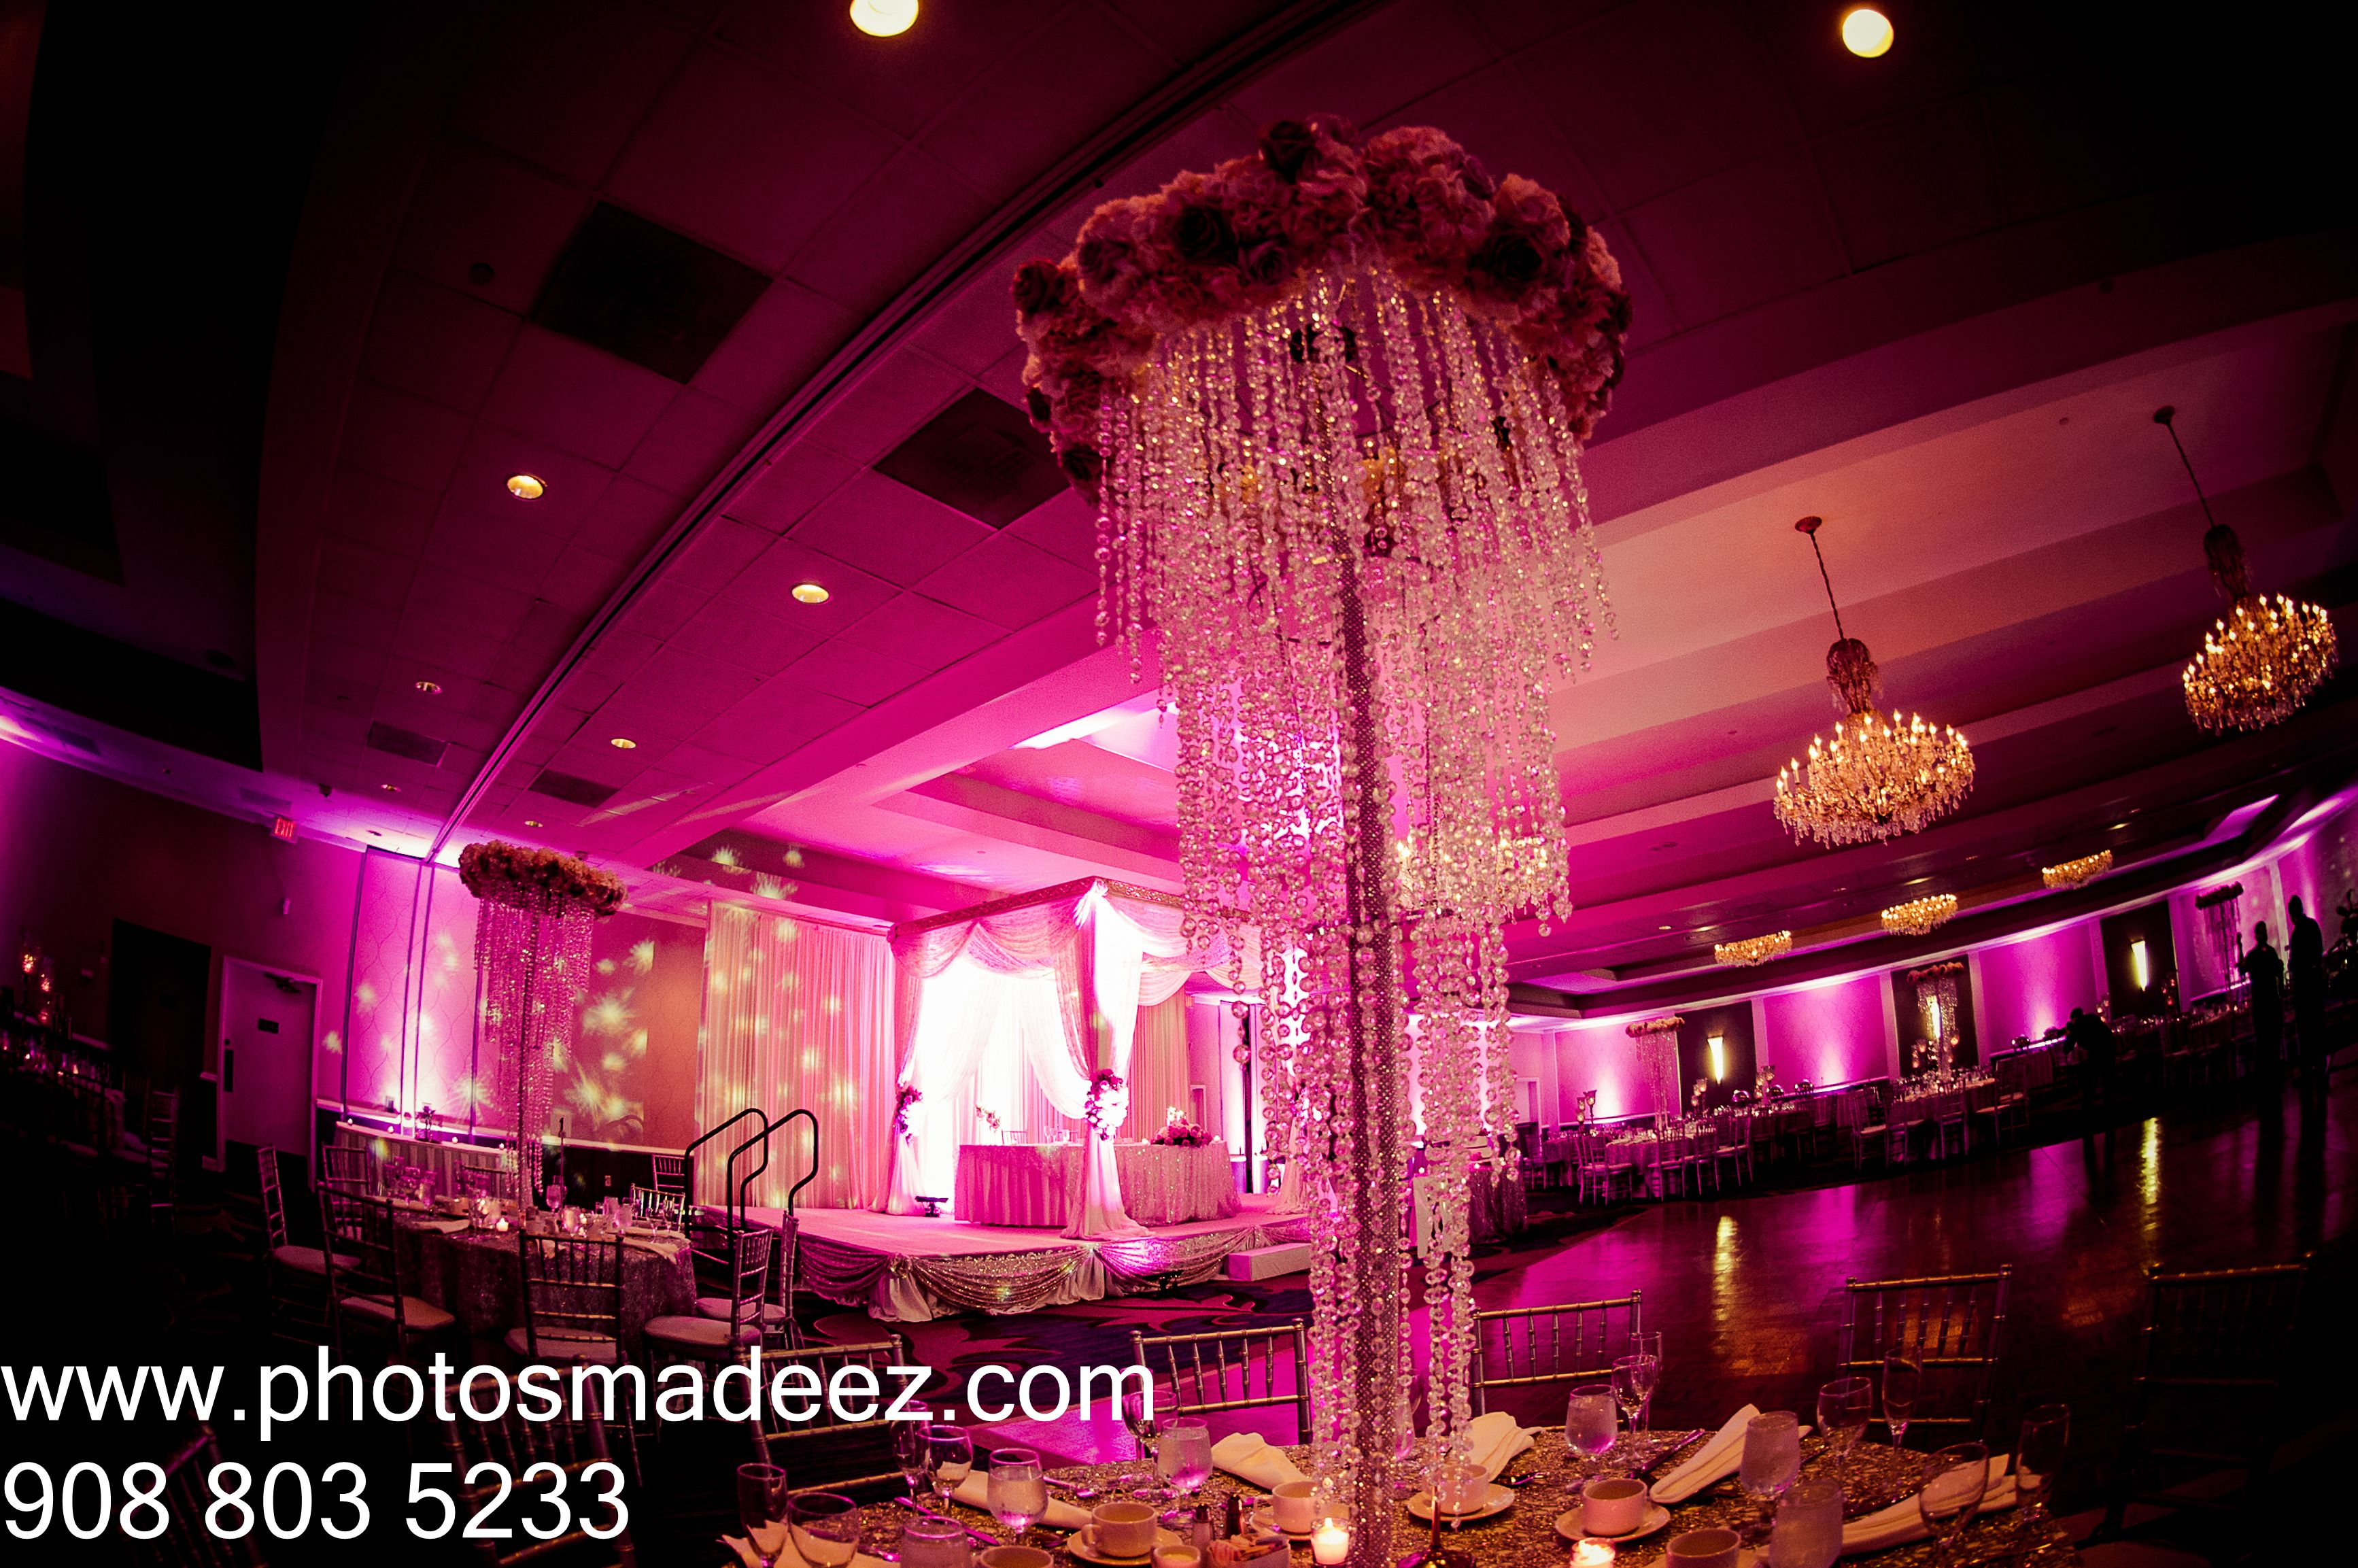 Wedding Decor at Indian Wedding Reception at Sheraton Parsippany, NJ ...